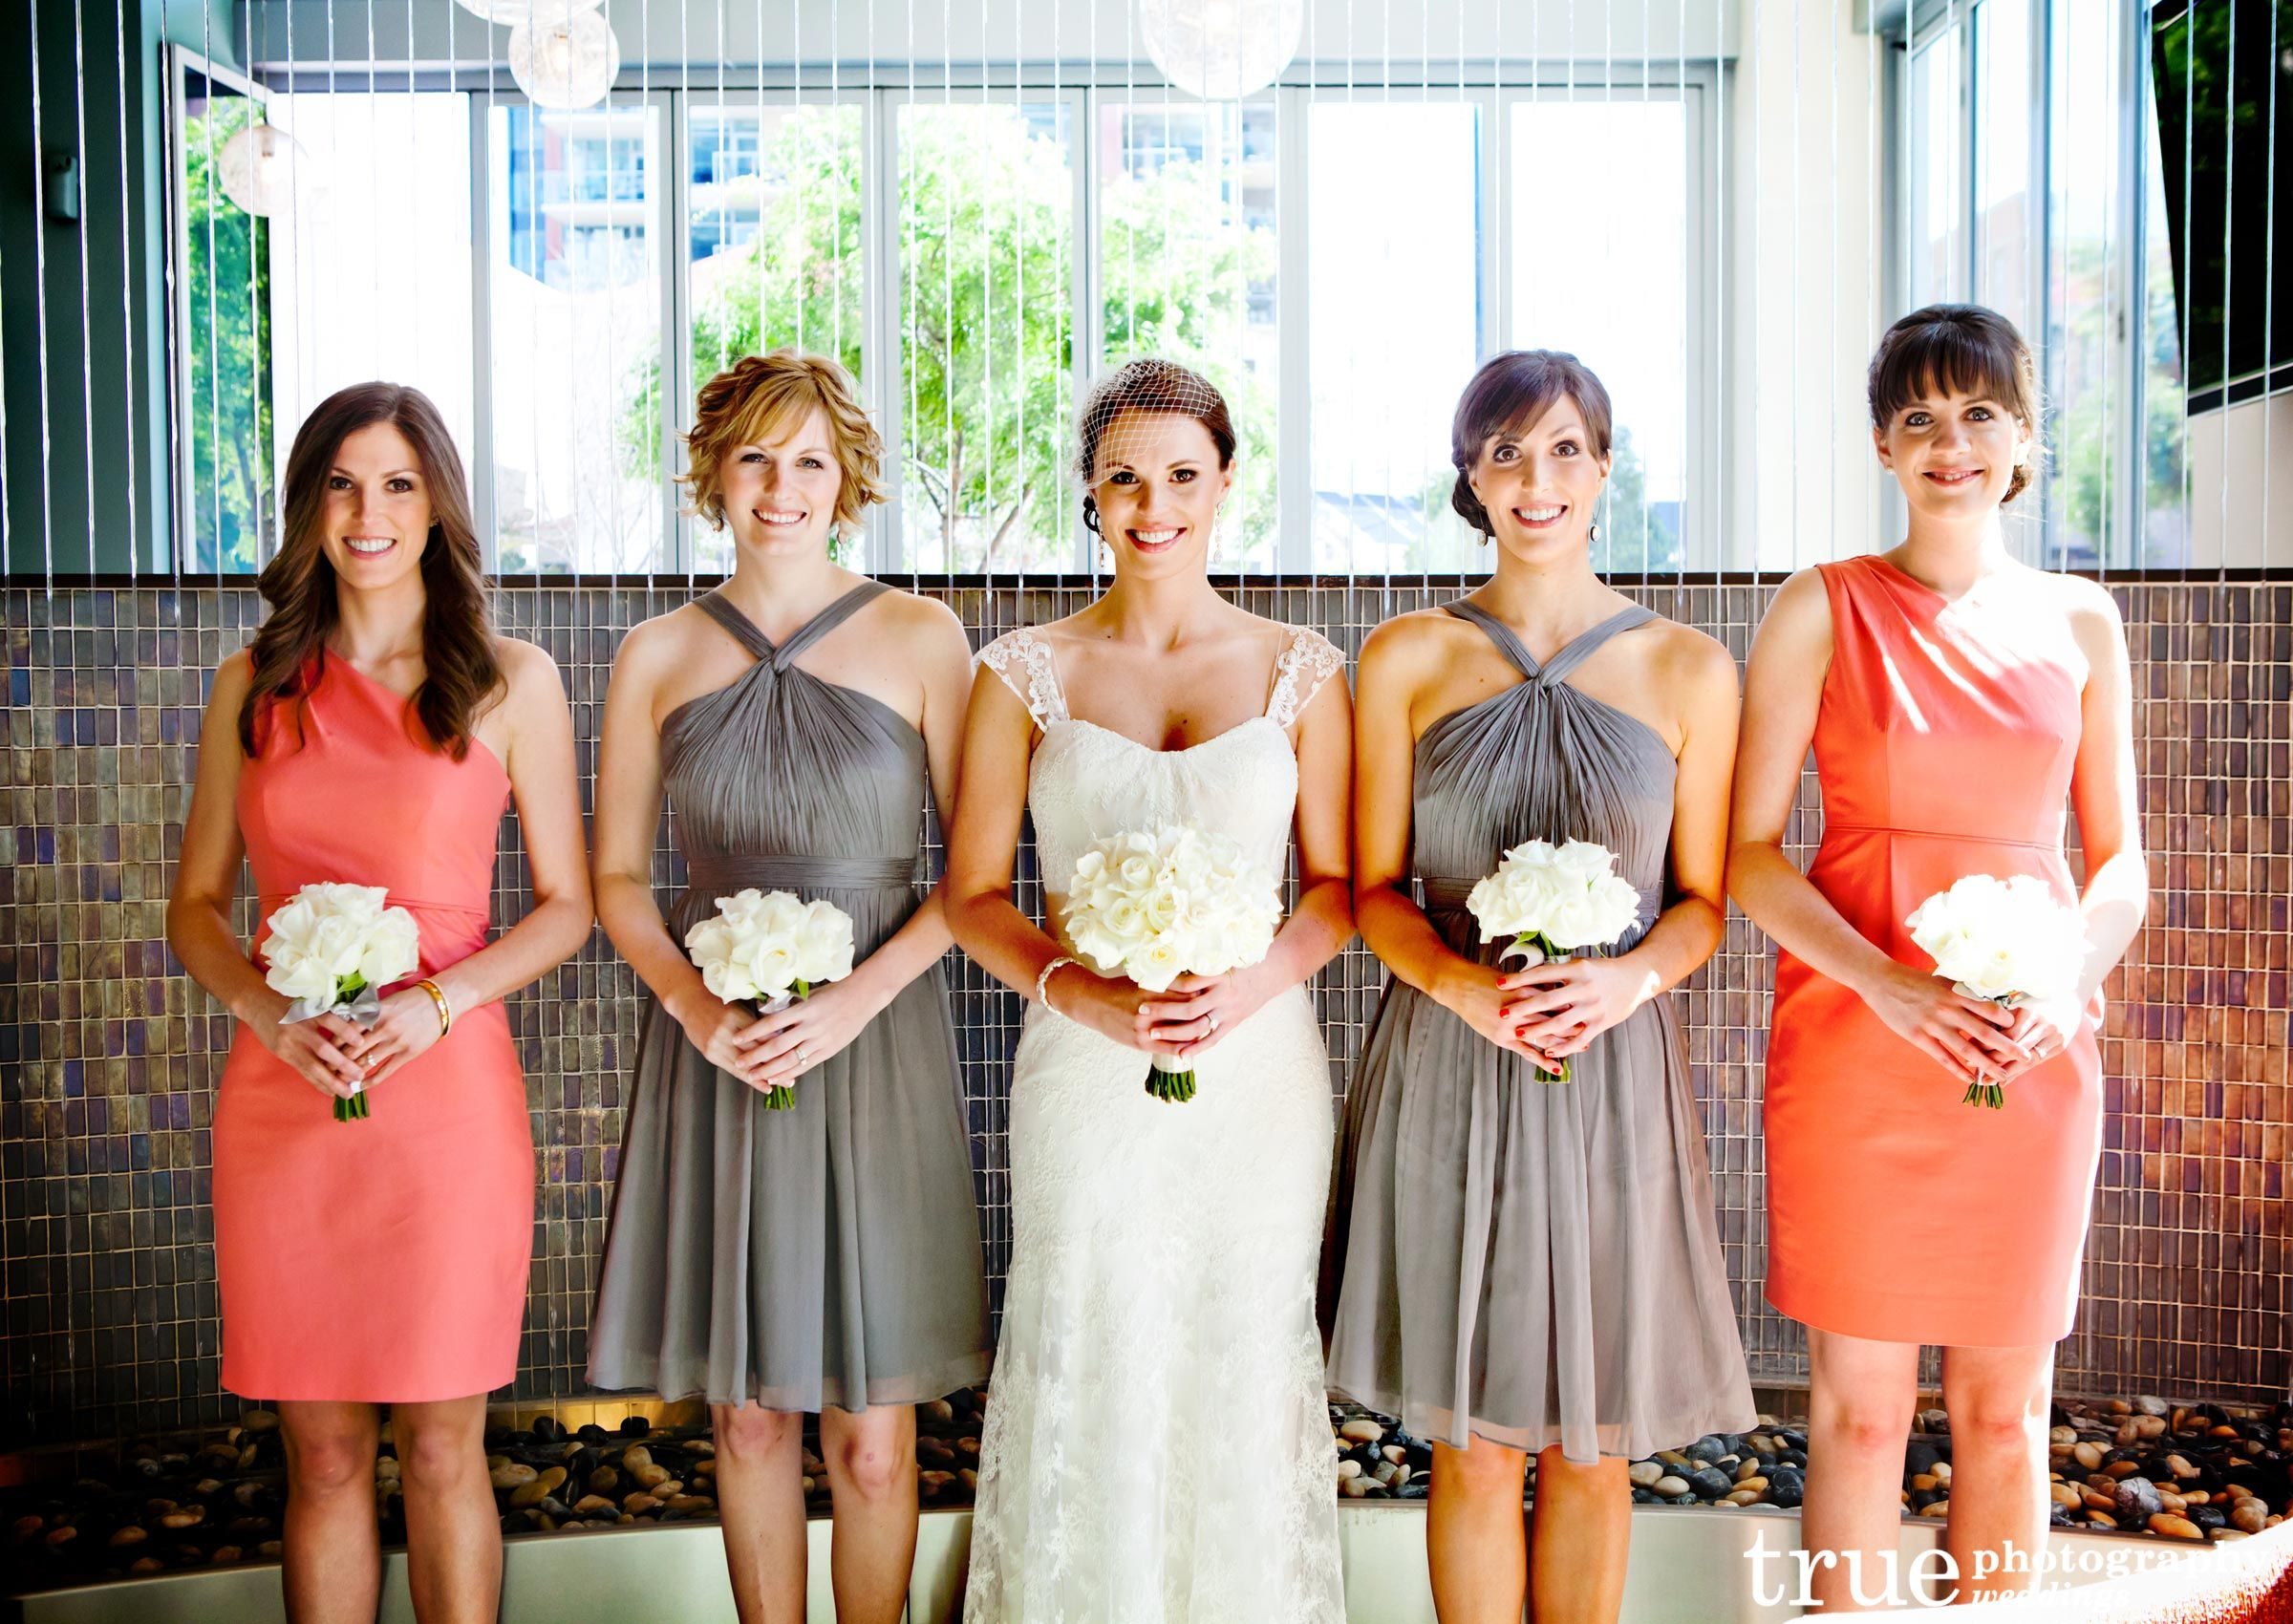 Cheap wedding reception images coral gray creates custom coral and gray bridesmaids dresses photo by true photography weddings would be cute if the bride had coral flowers ombrellifo Images